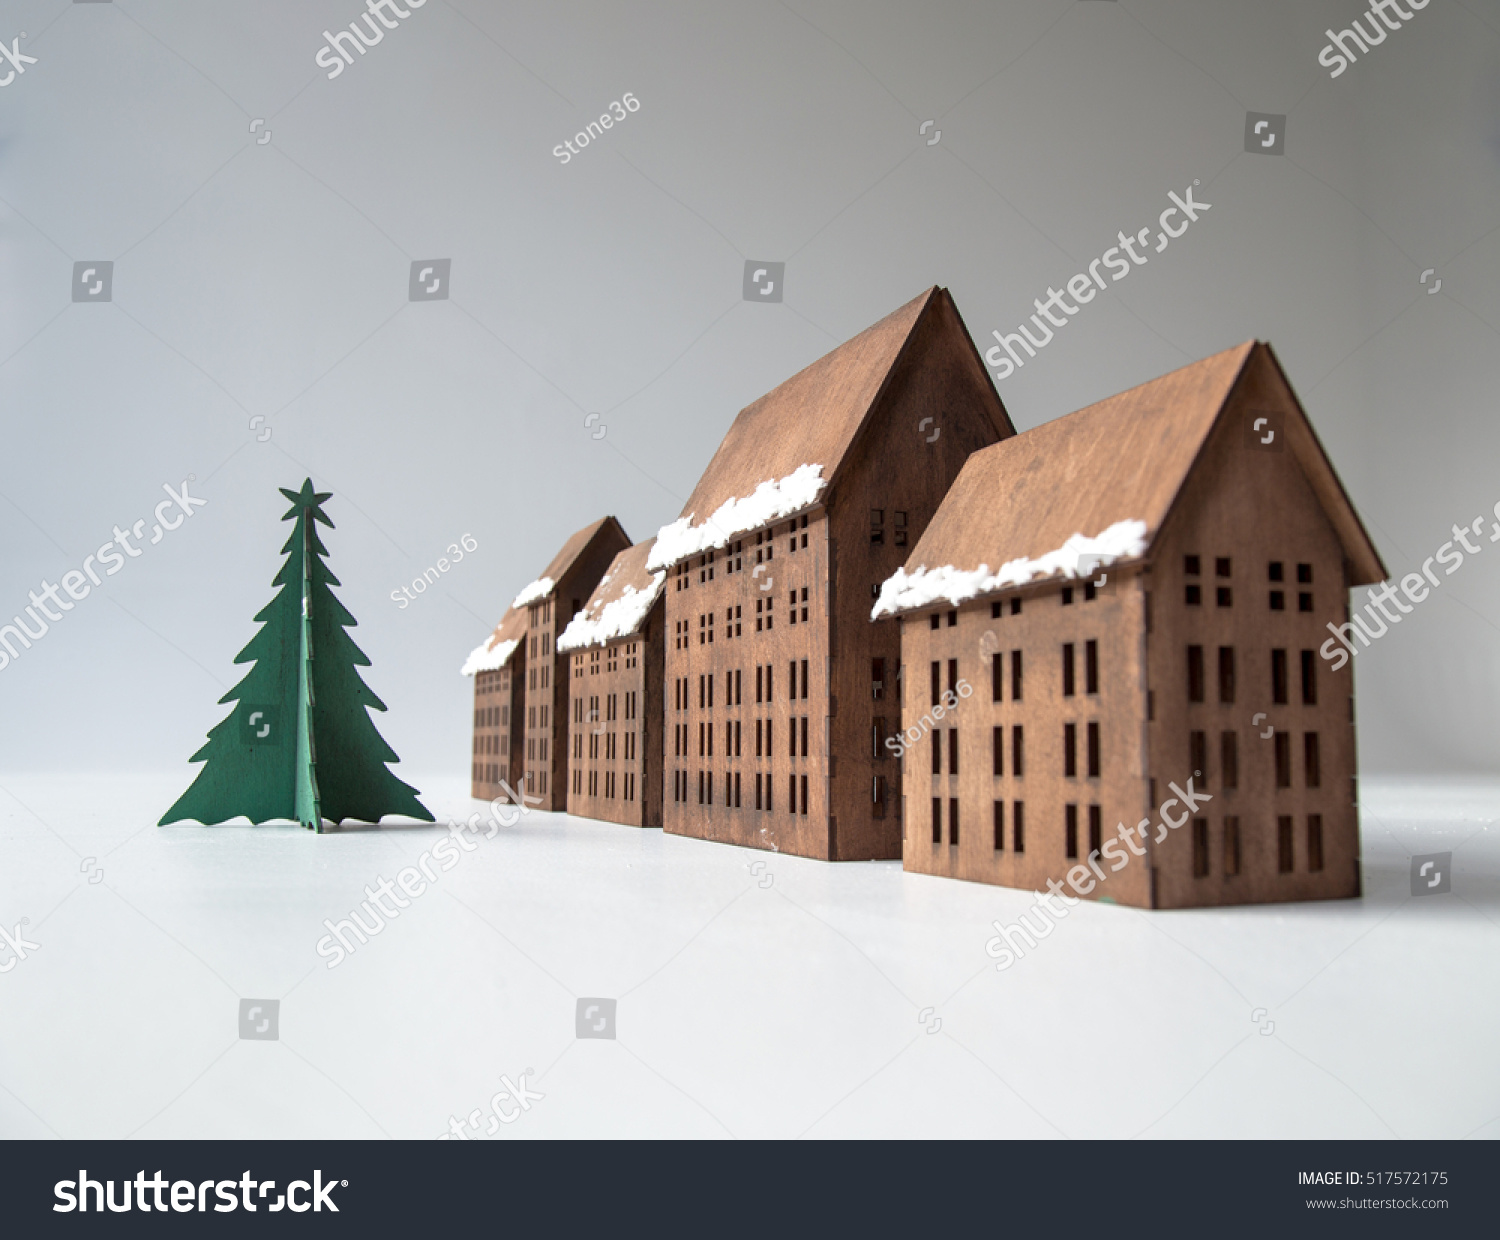 Wooden toys miniature houses christmas tree stock photo edit now